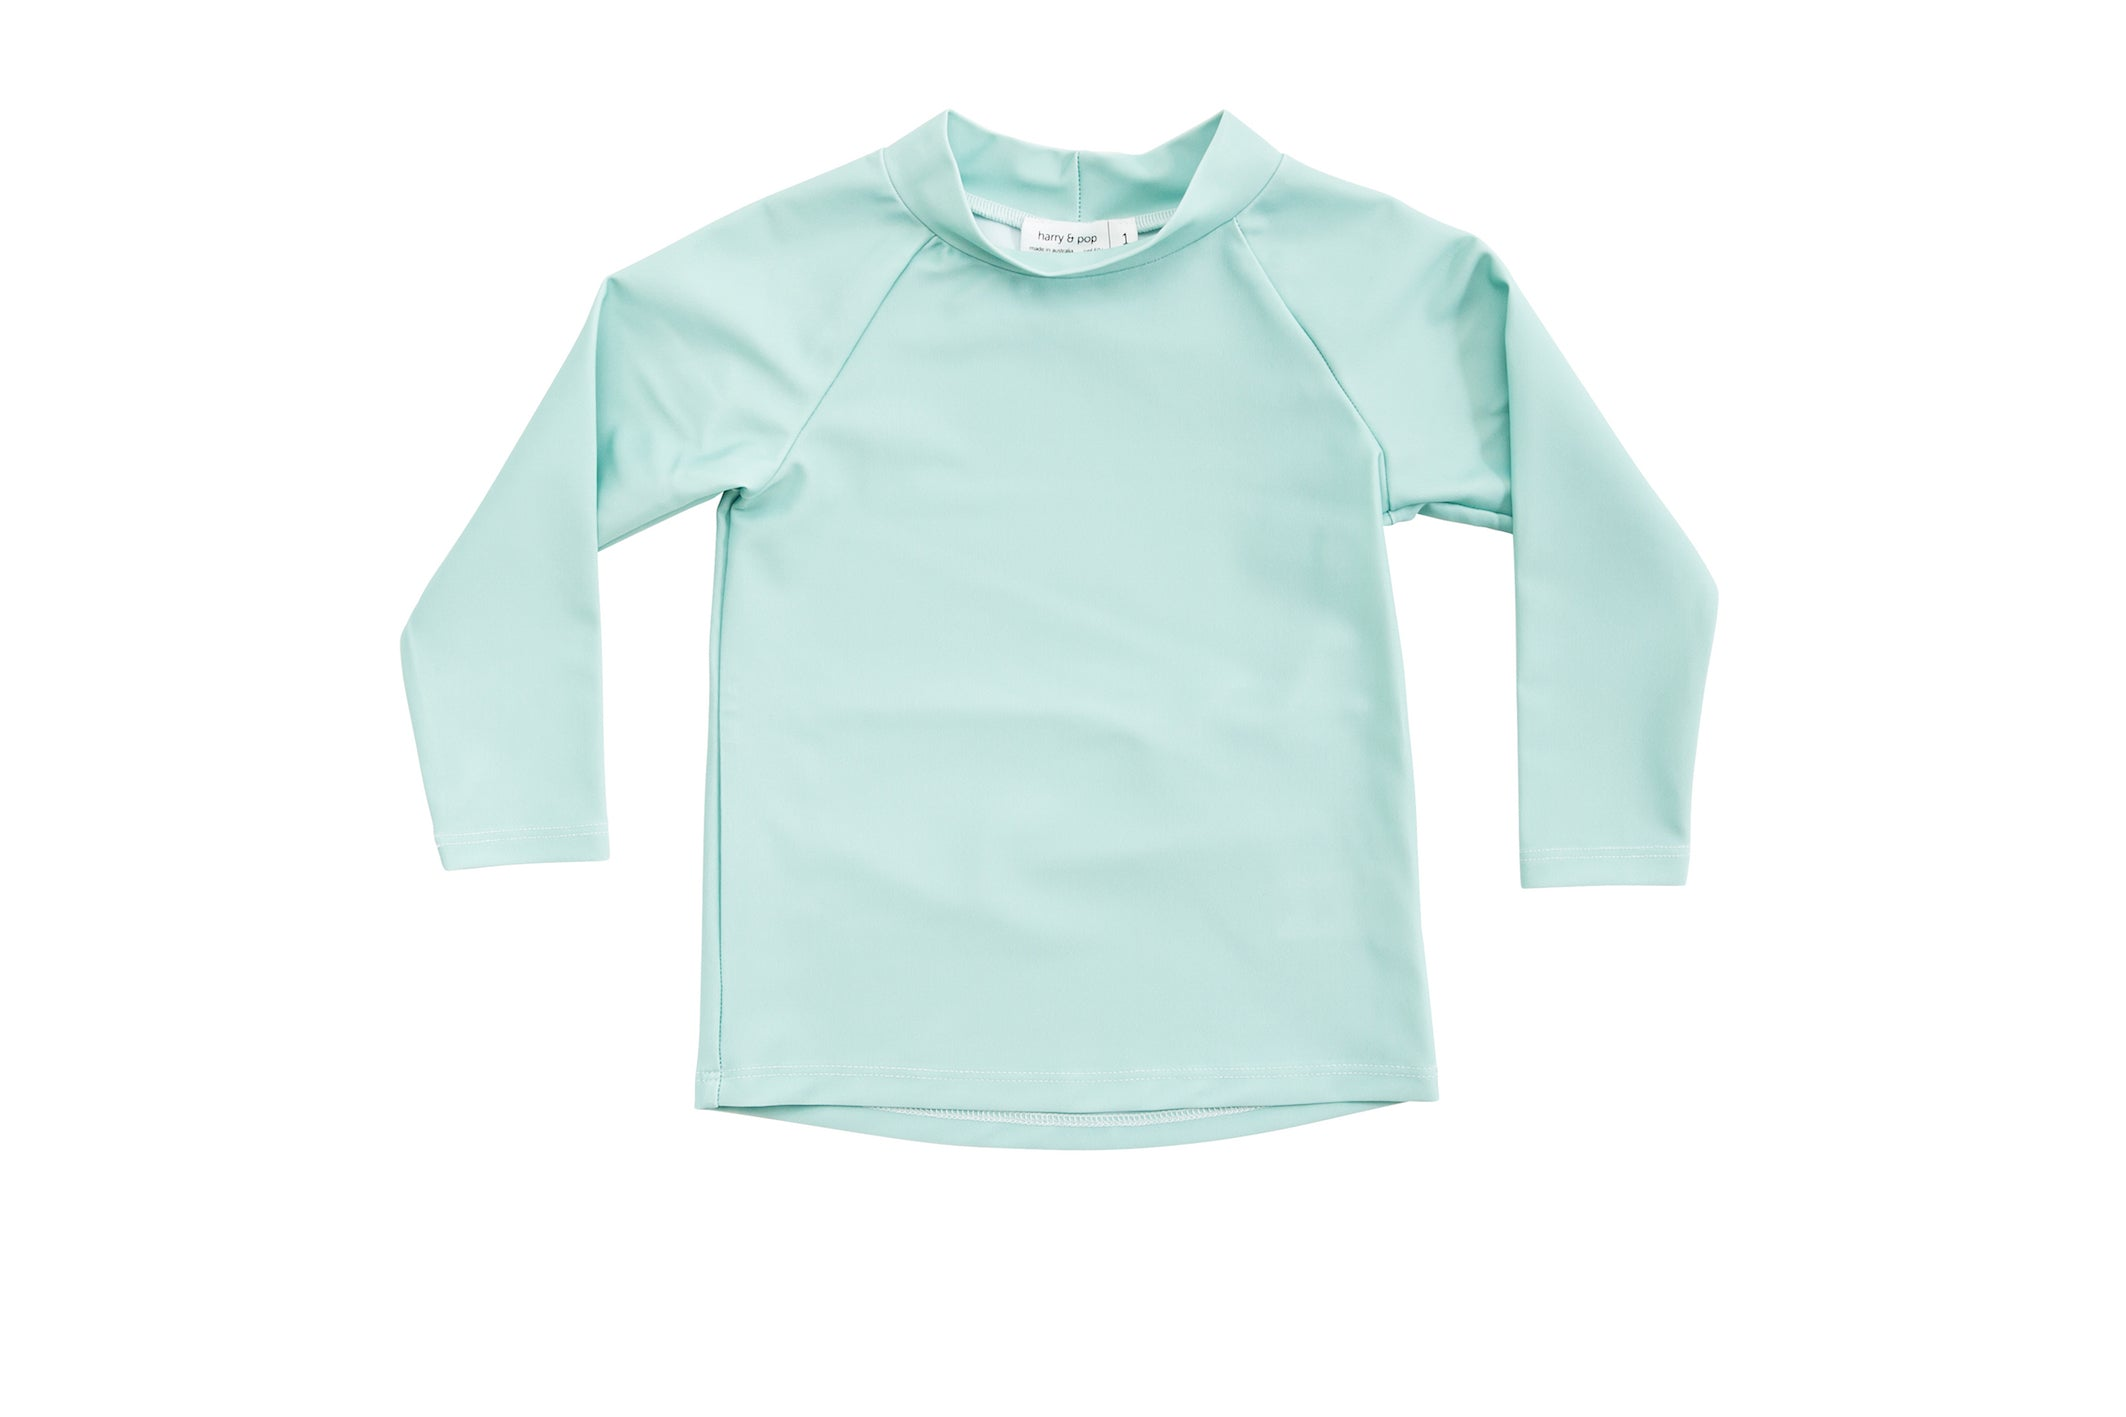 harry & pop original rashguard in great ocean green | rashie | rashvest